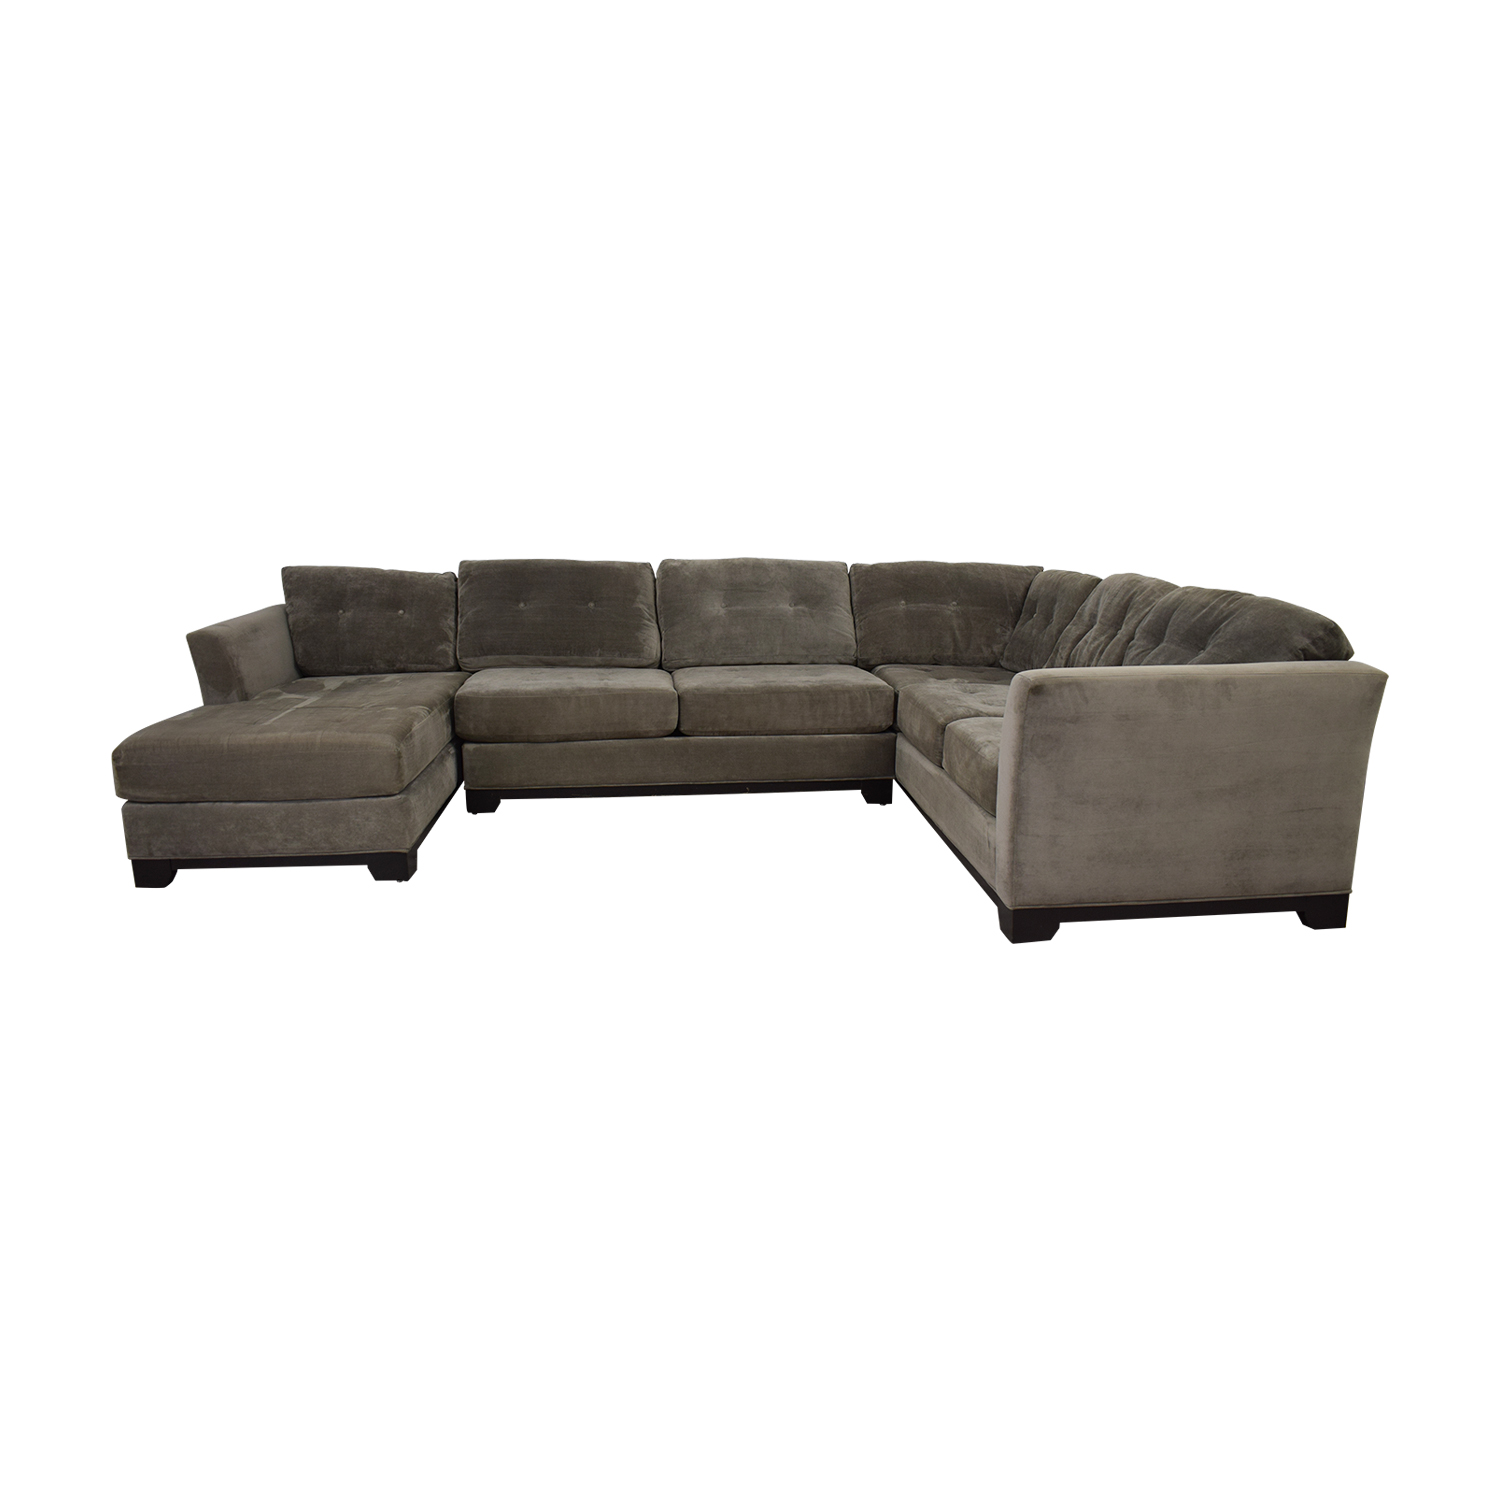 buy Jonathan Lewis Jonathan Lewis Elliot Grey Tufted Microfiber Chaise U-Shaped Sectional online